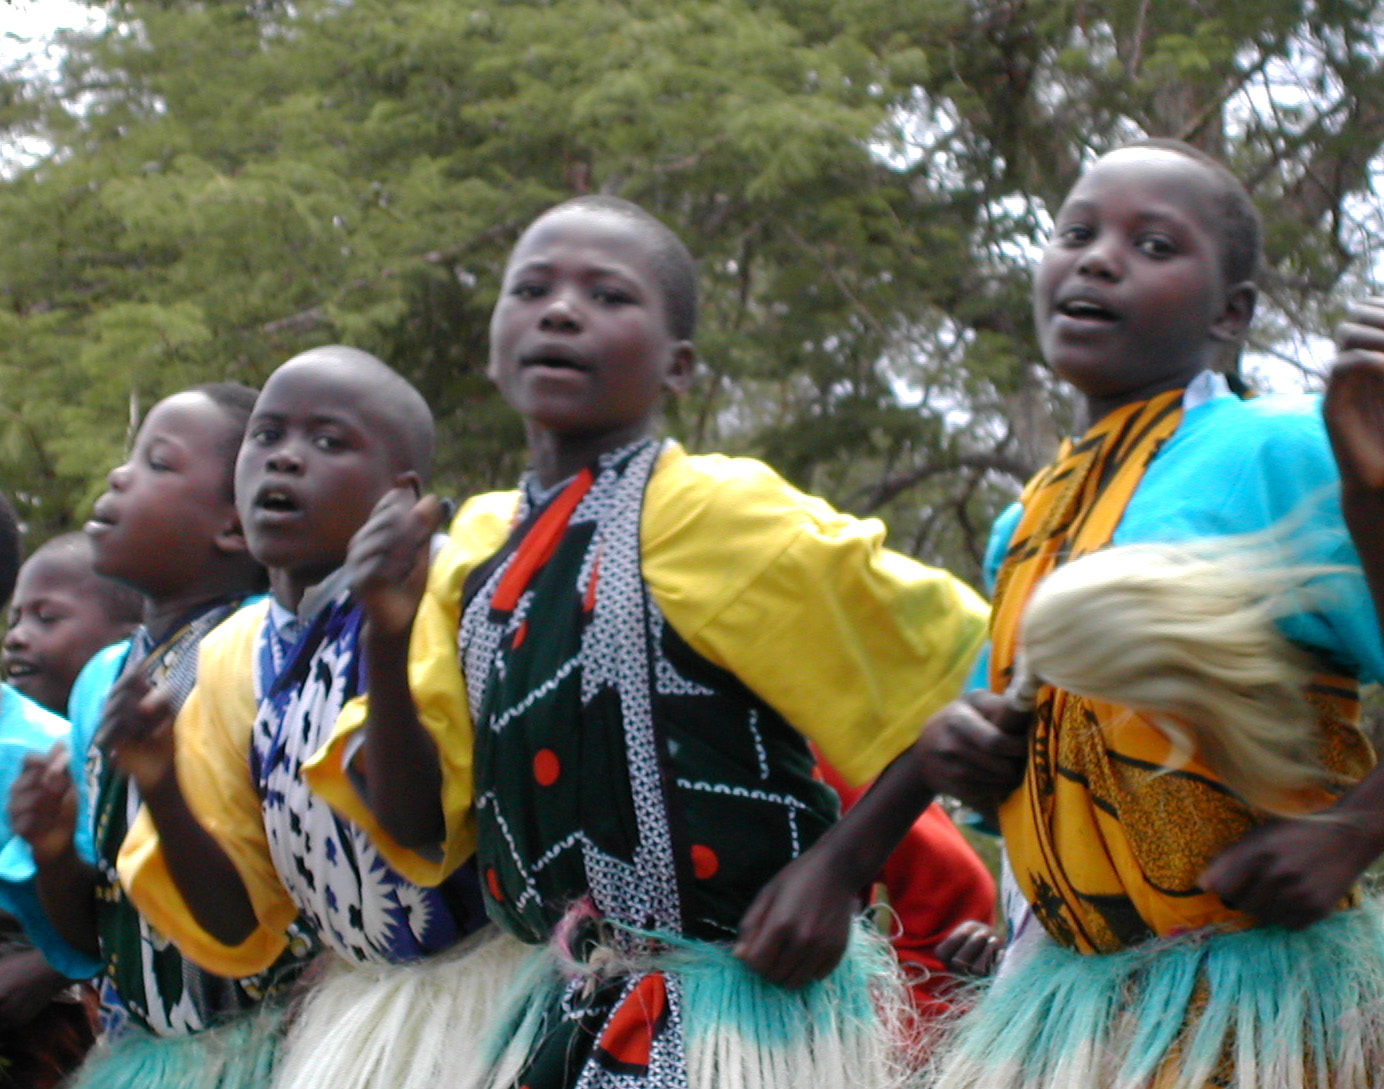 Kenyan People And Culture Image Gallery kenya cu...